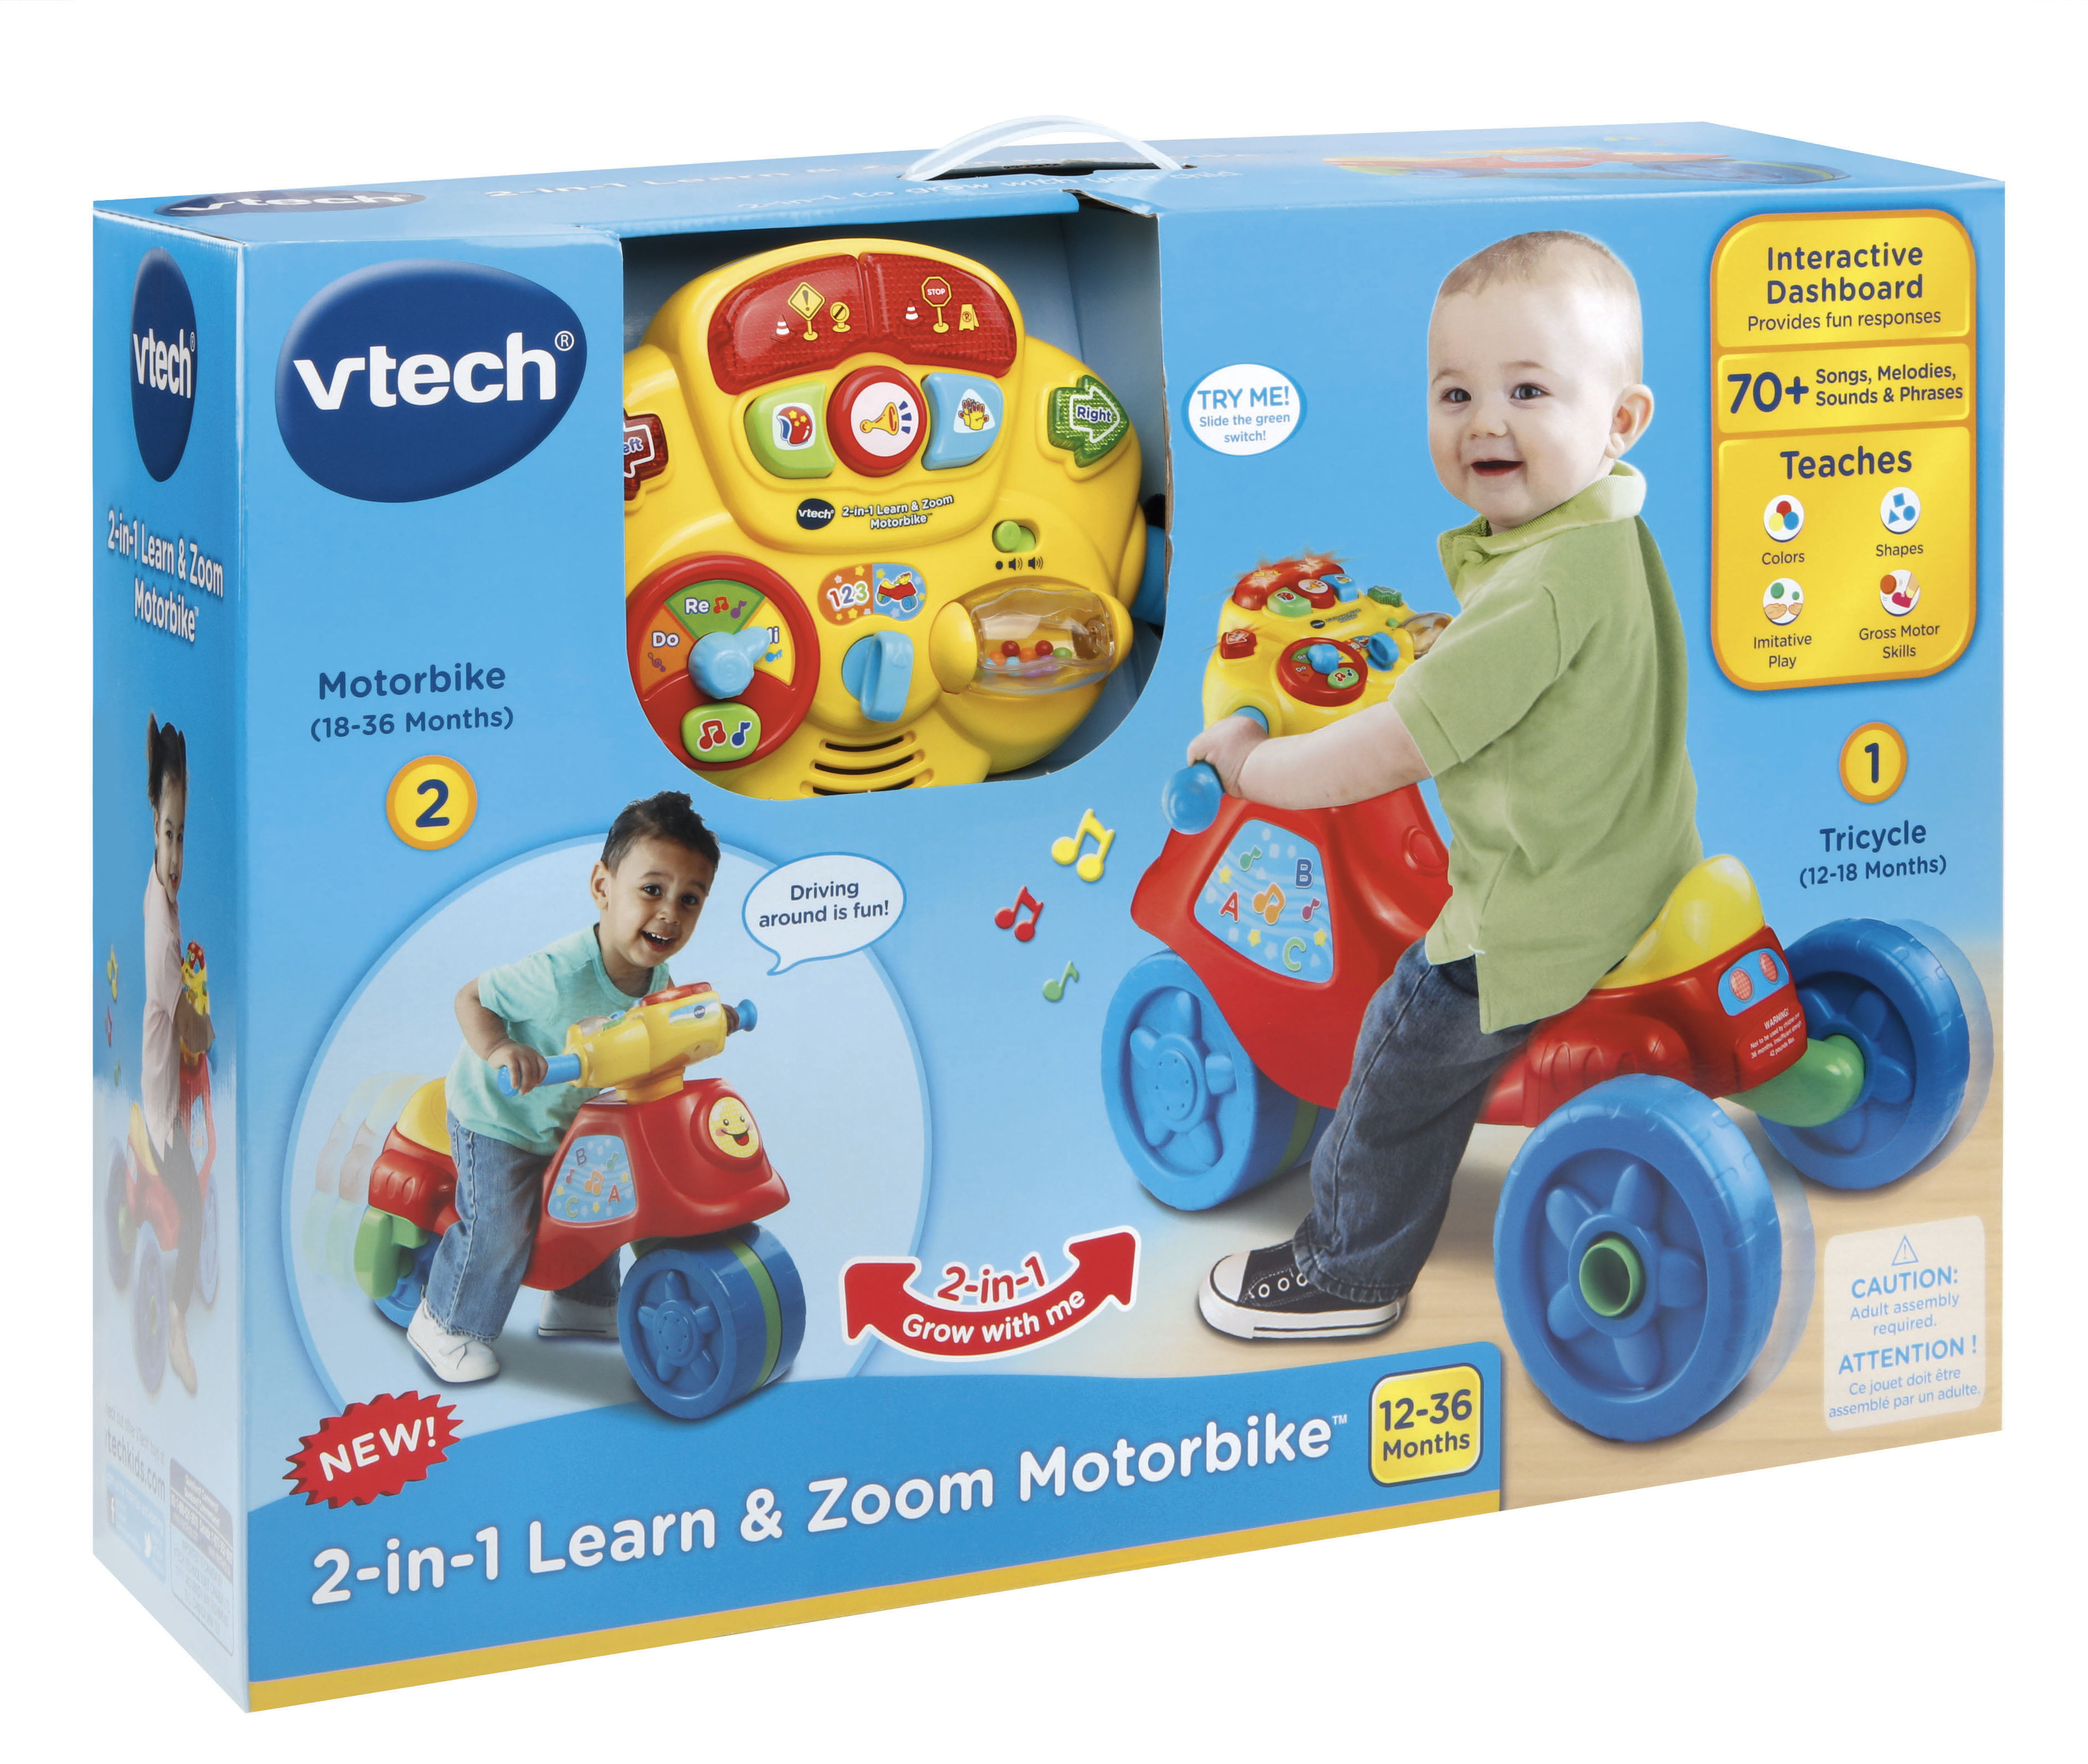 VTech 2 In 1 Learn And Zoom Motorbike Riding Toy For 1 Year Old Kid Tricycle Toy